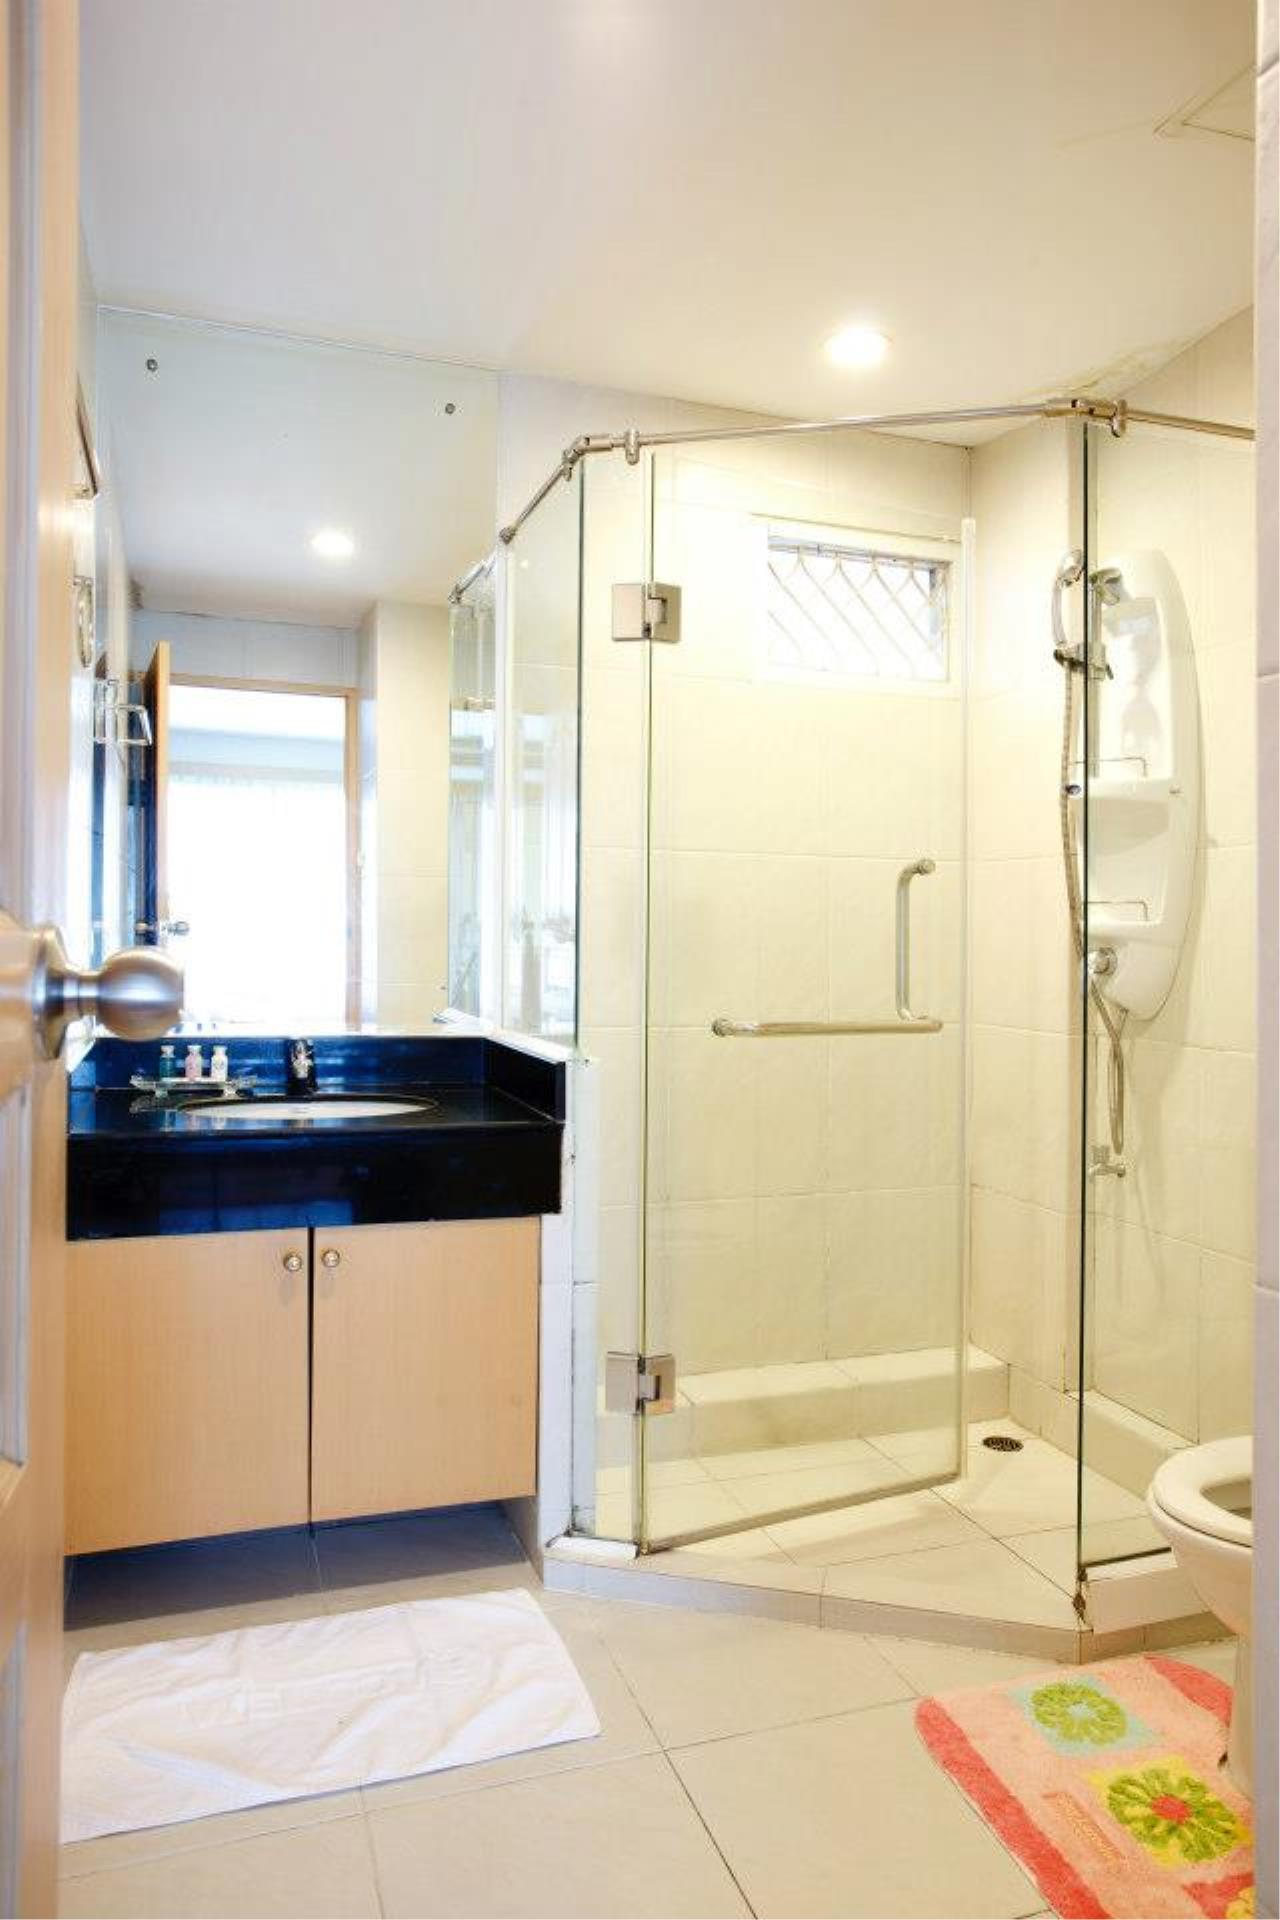 BKK Condos Agency's 1 bedroom serviced apartment for rent at Chaidee Mansion 1